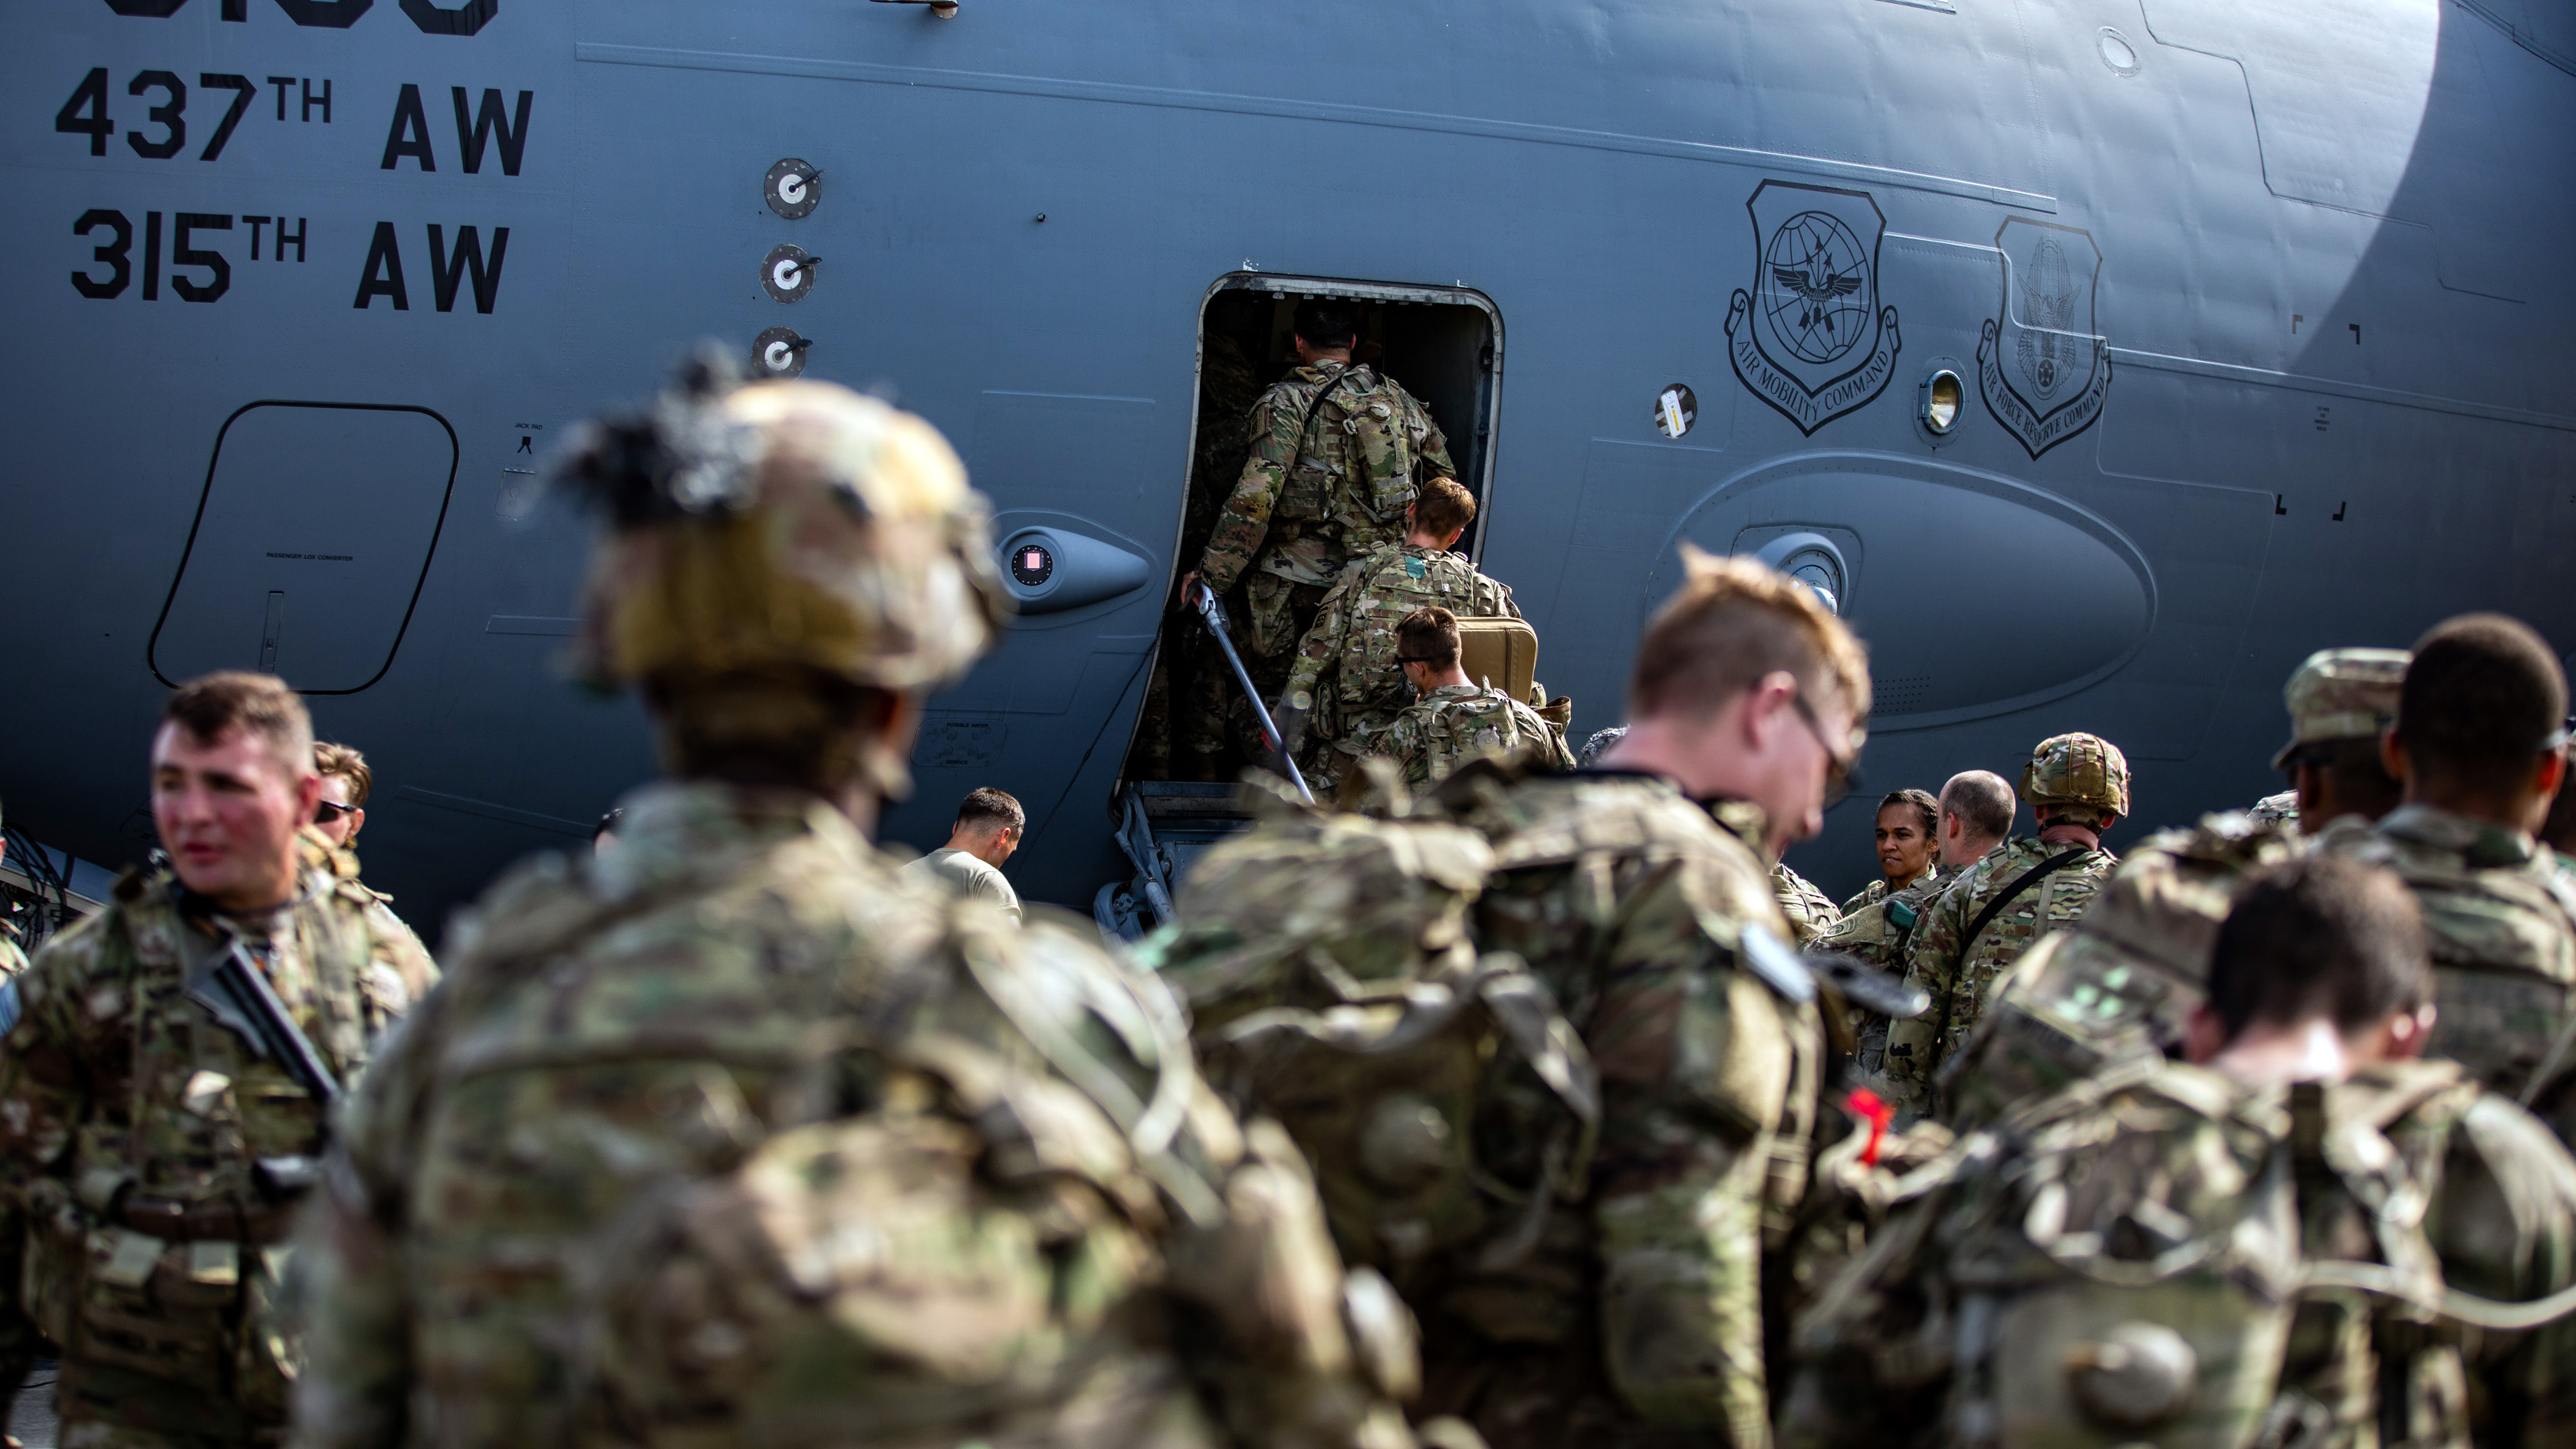 Soldiers boarding airplane